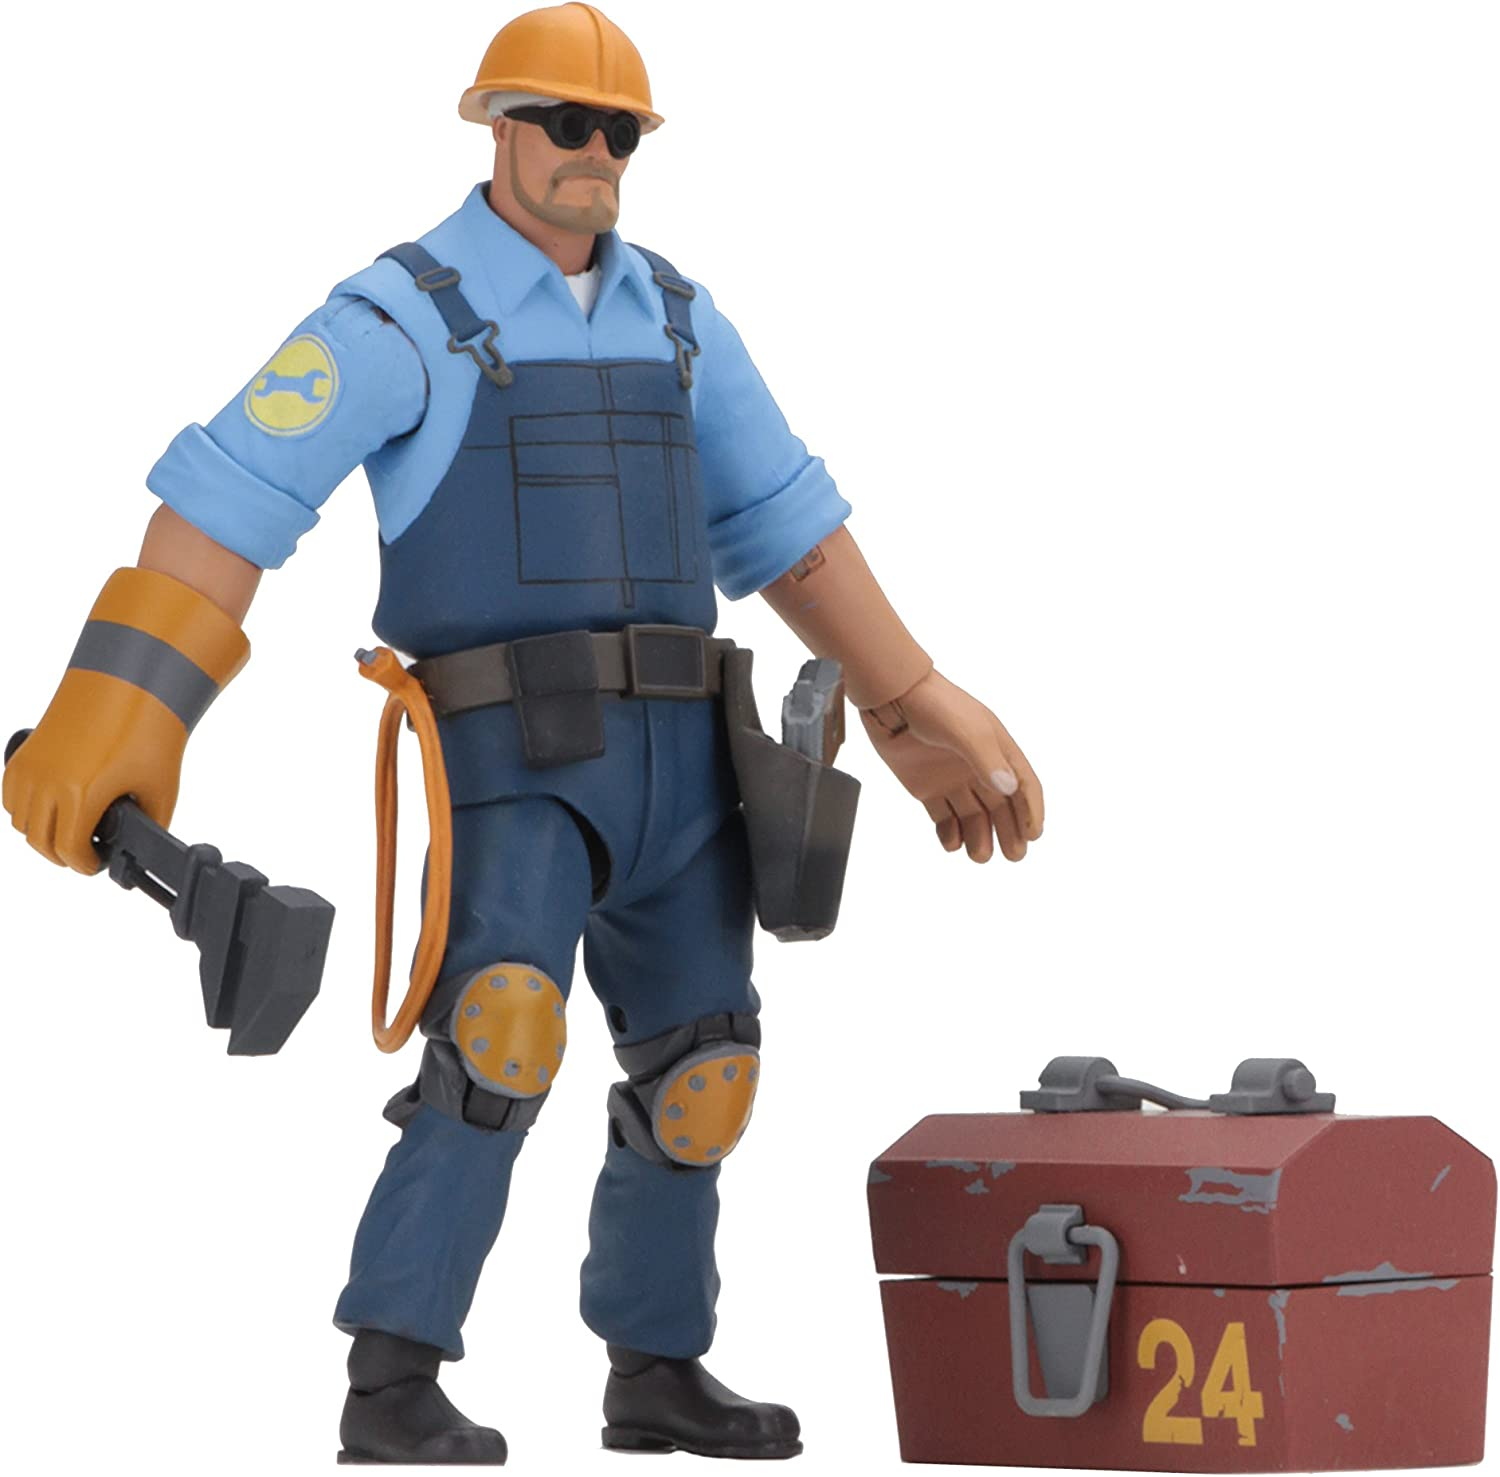 Amazon Com Neca Team Fortress 2 7 Scale Action Figure